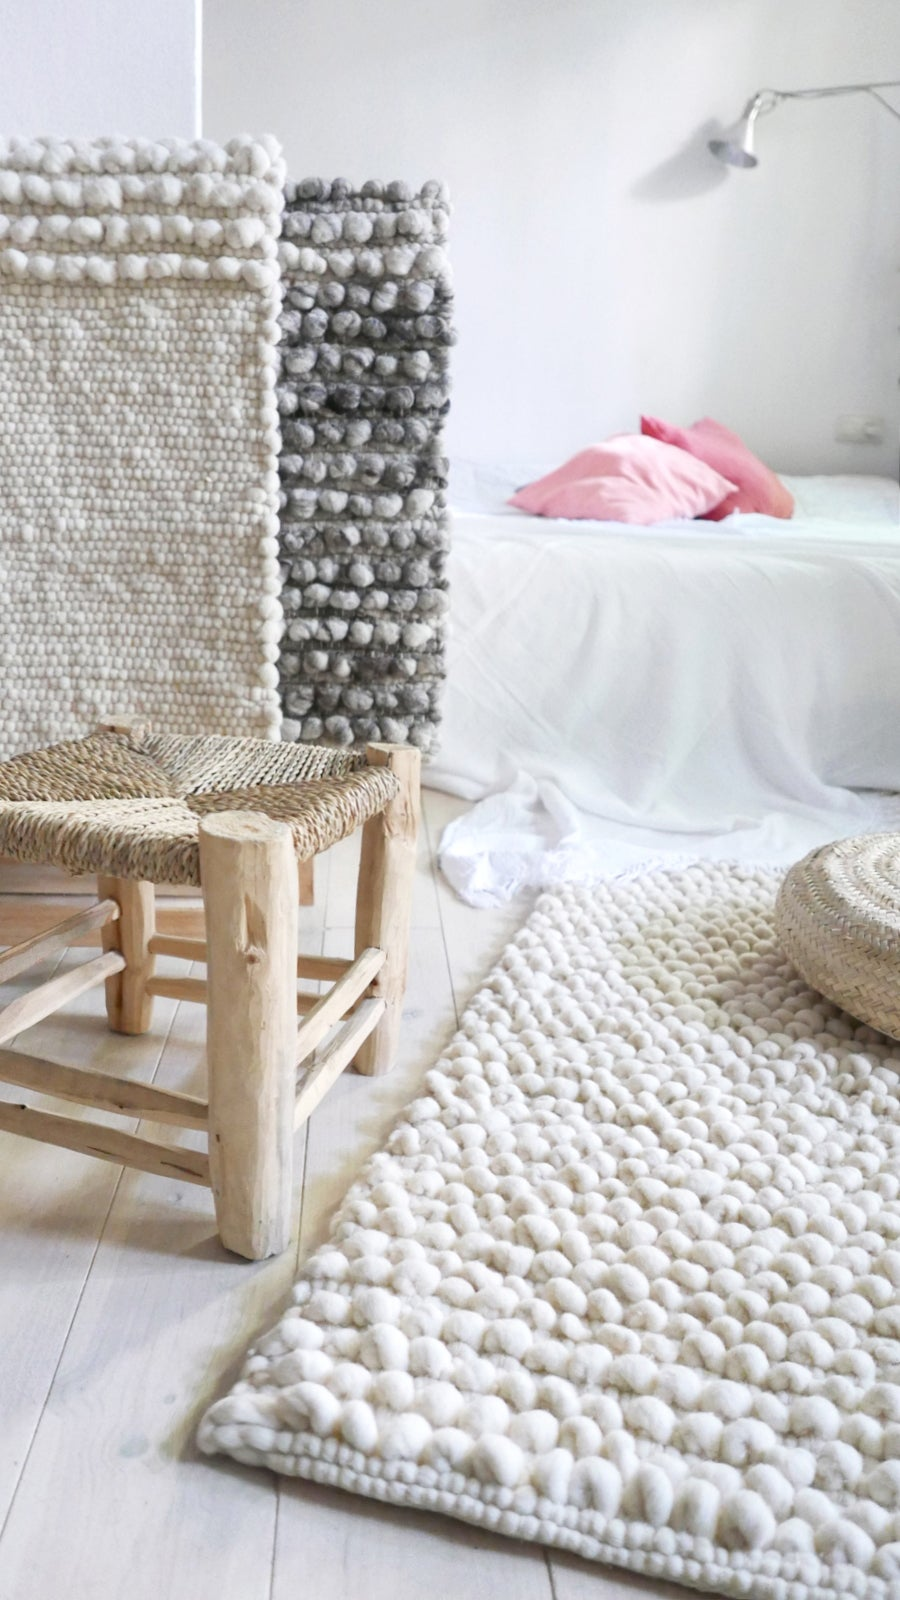 Image of Handwoven Wool Rug Ecru - Natural color undyed wool